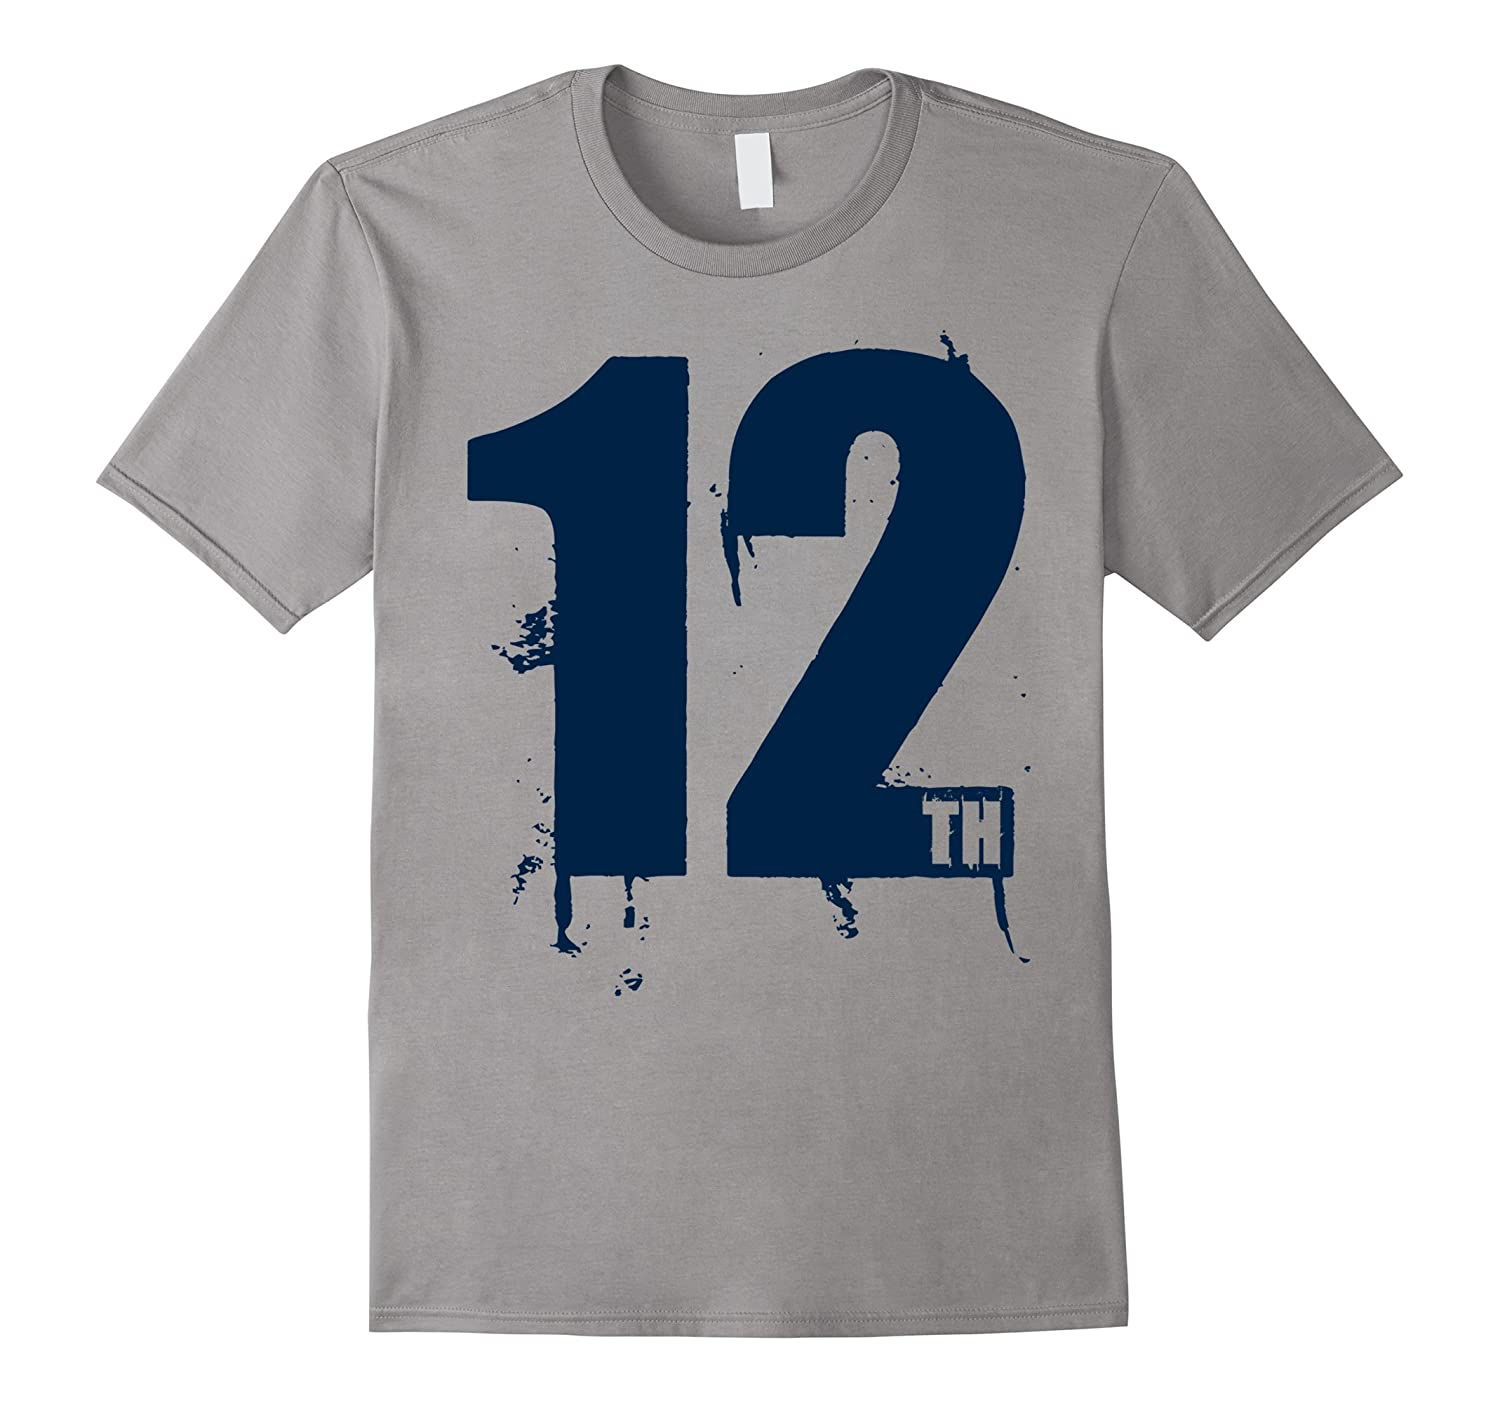 12th Man T-Shirt for Seattle Fans!-Art